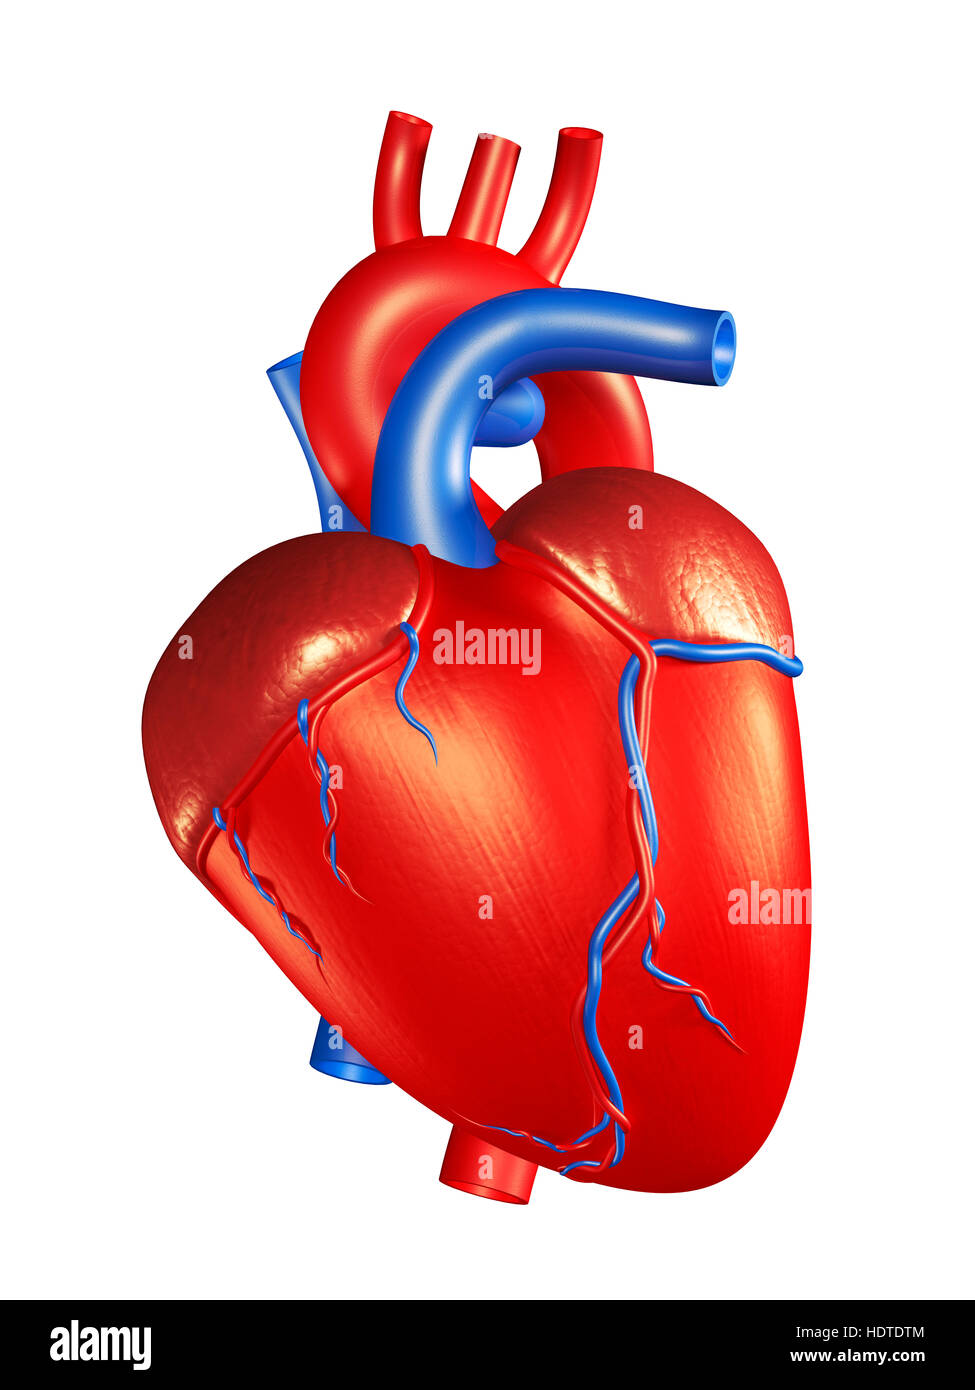 Human heart, 3D illustration - Stock Image